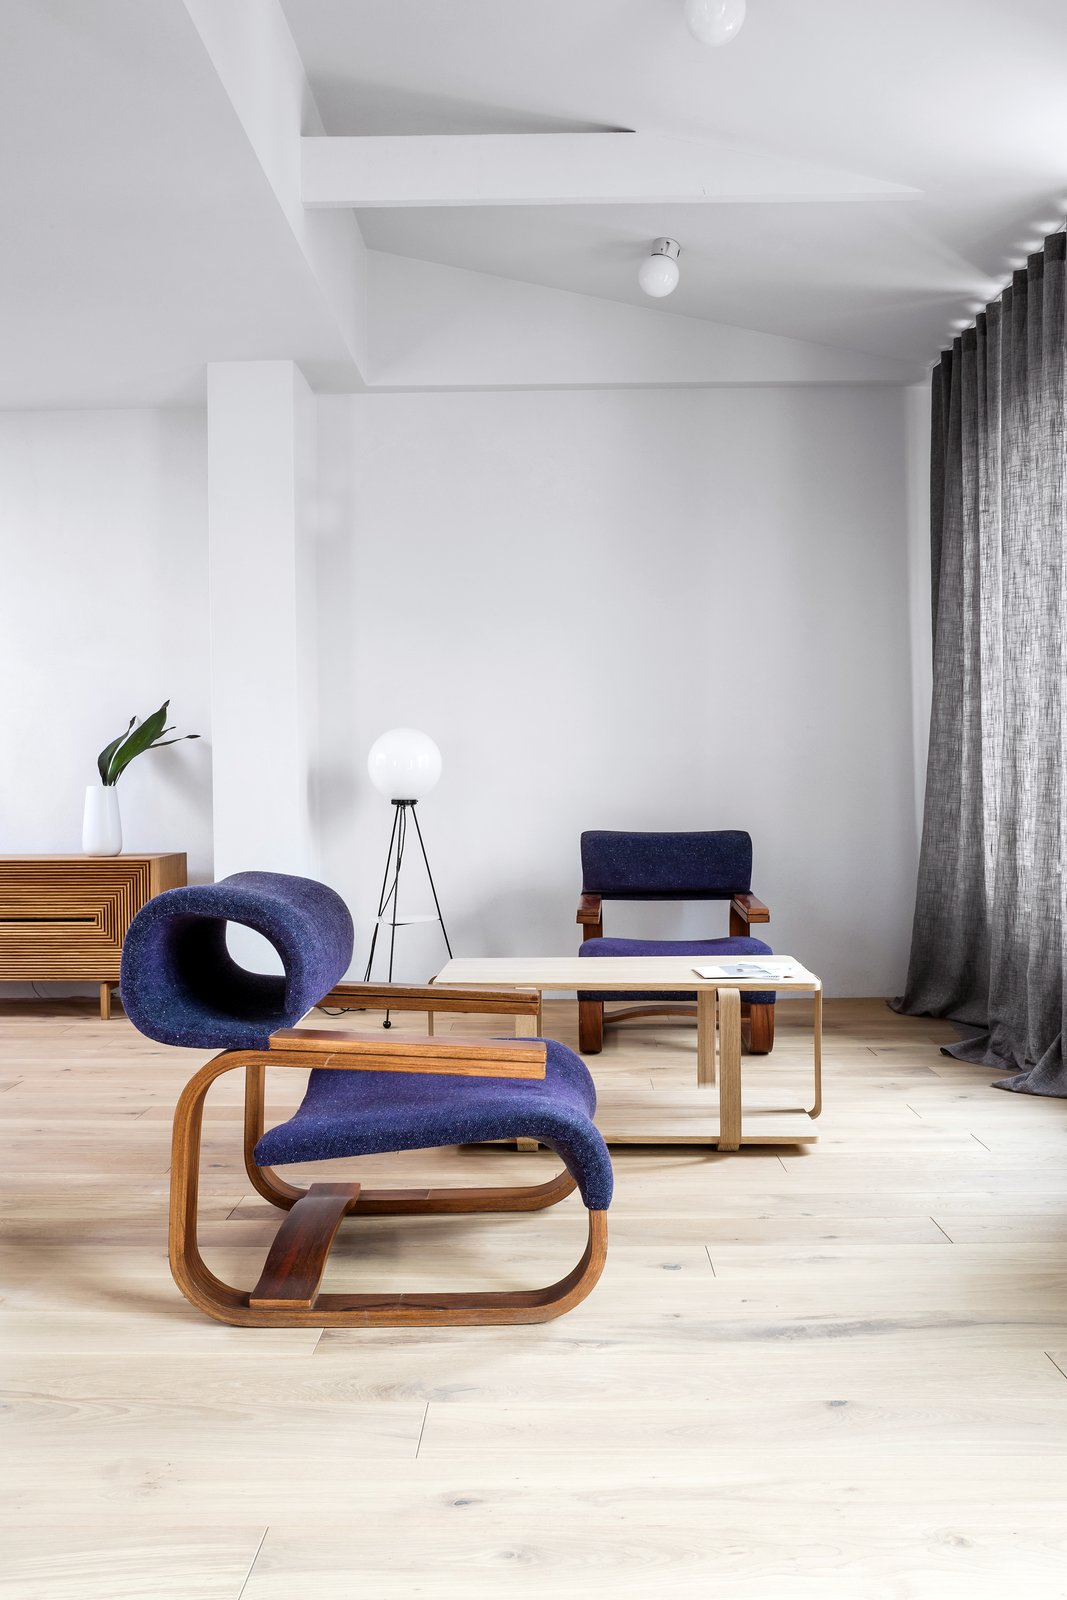 Living Room, Coffee Tables, and Chair Armchair designed by Jan Bocan (1972)  Photo 2 of 12 in A Family's Loft in Poland Gets a Minimalist Renovation That's Both Elegant and Functional